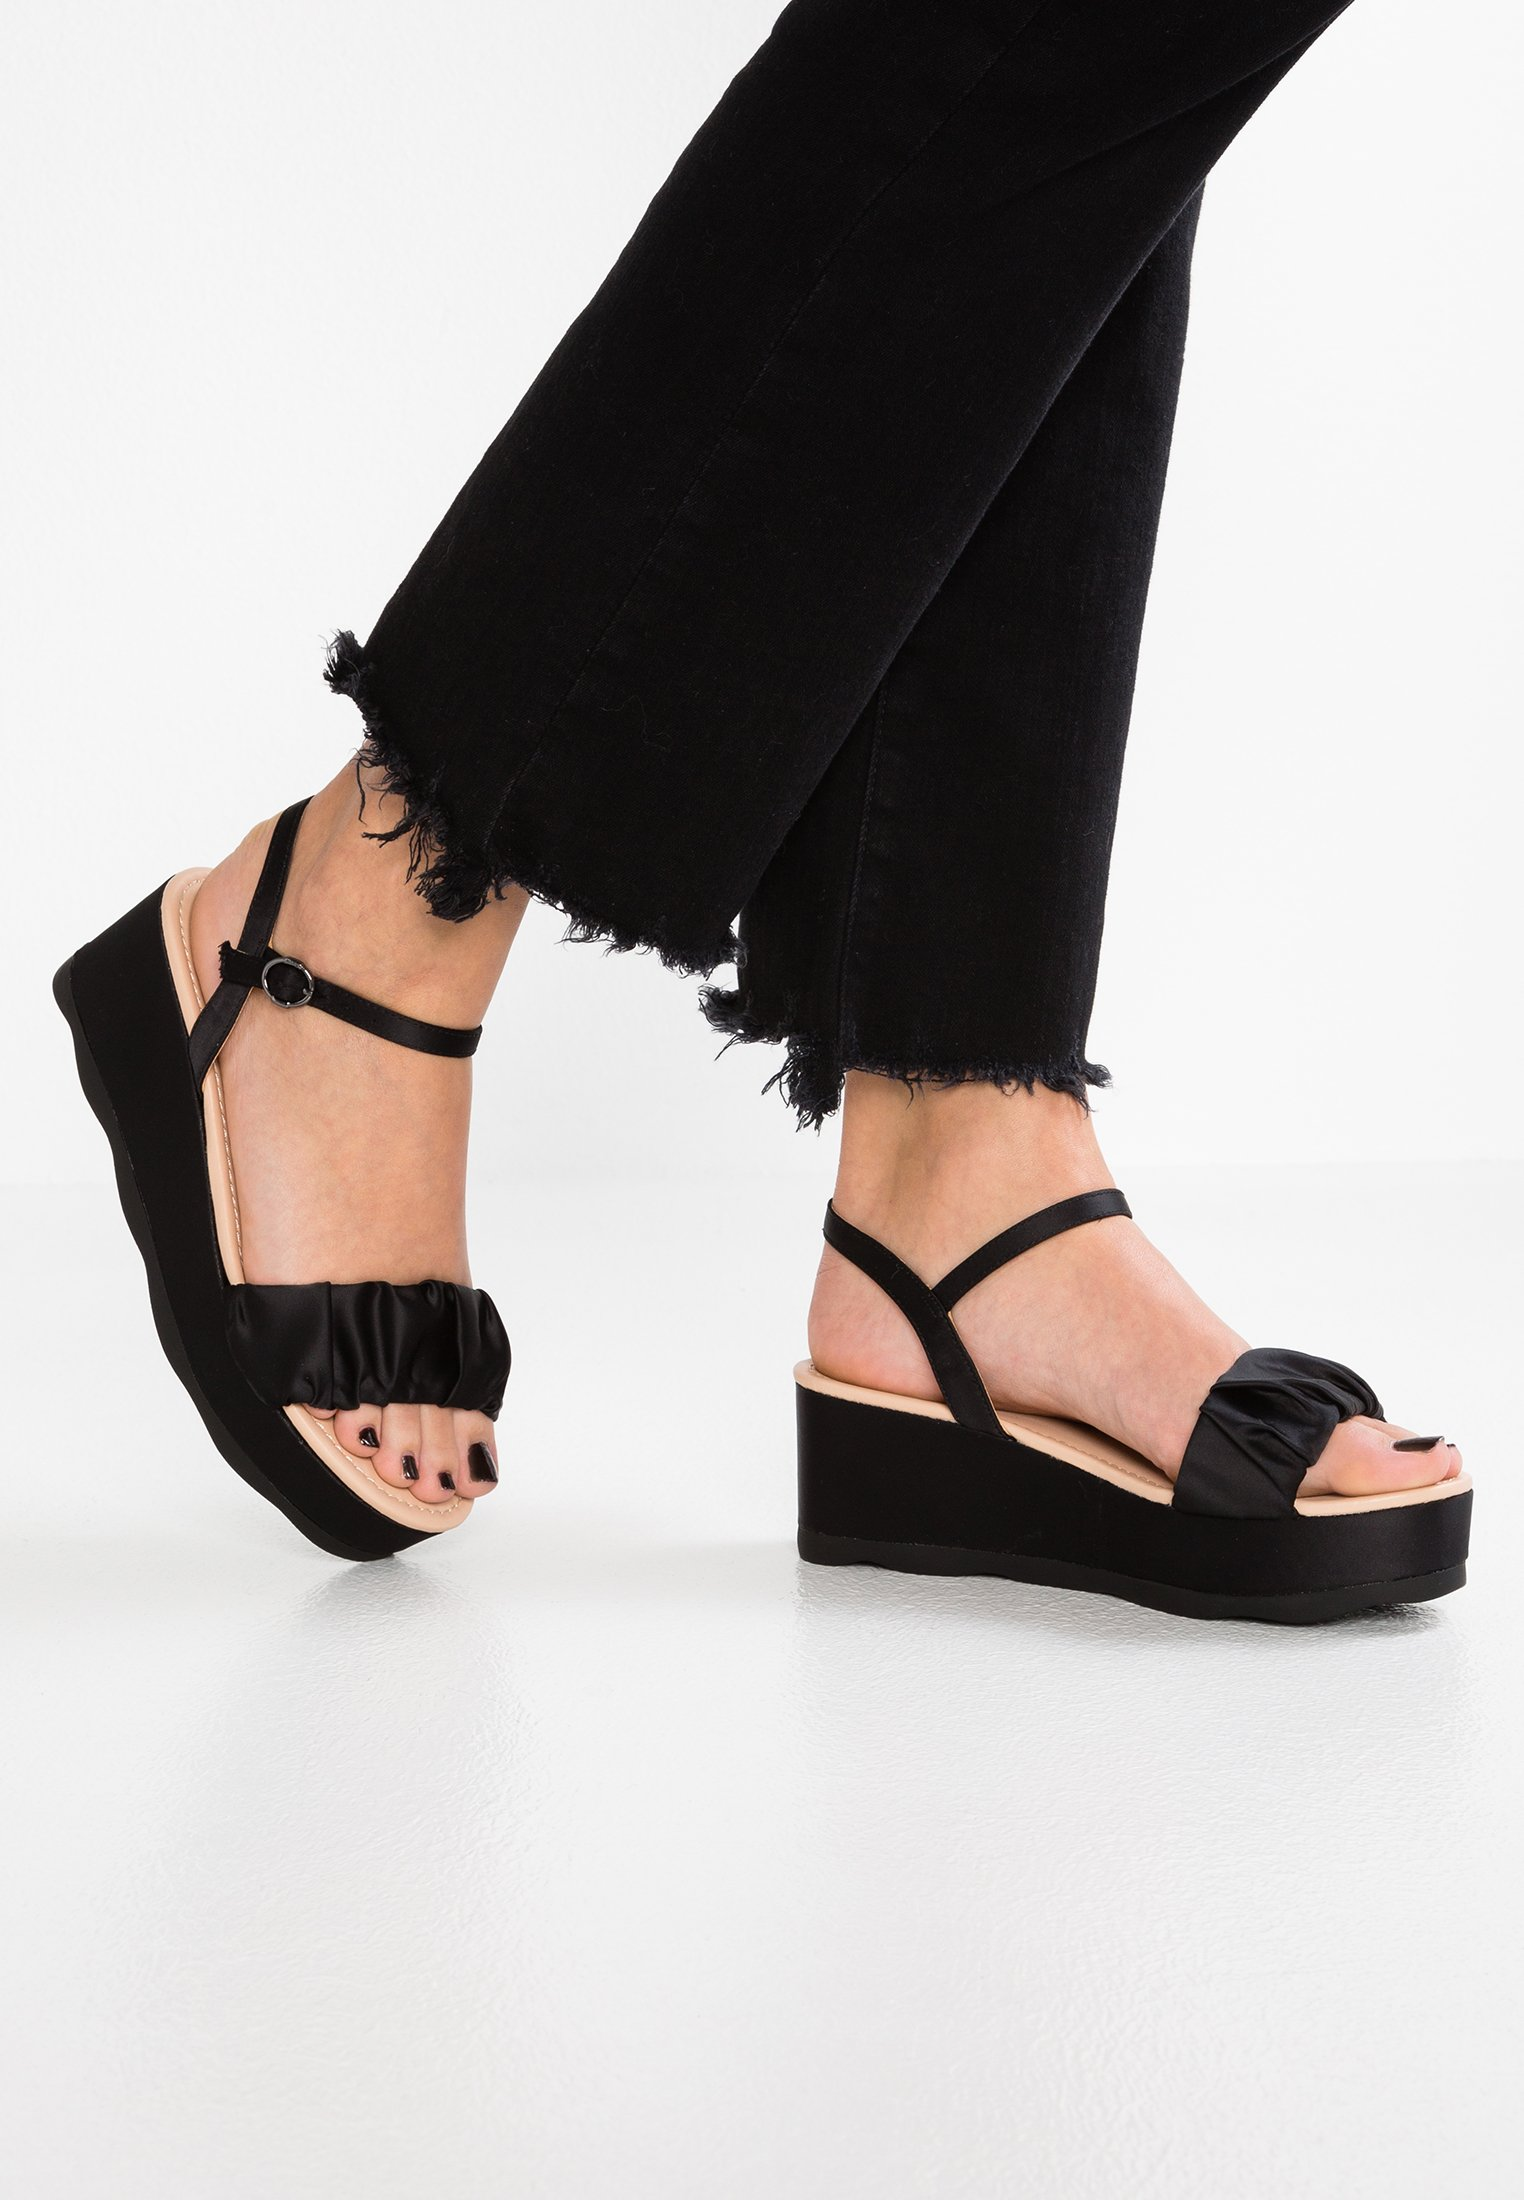 Chaussure plateforme compensee pas cher